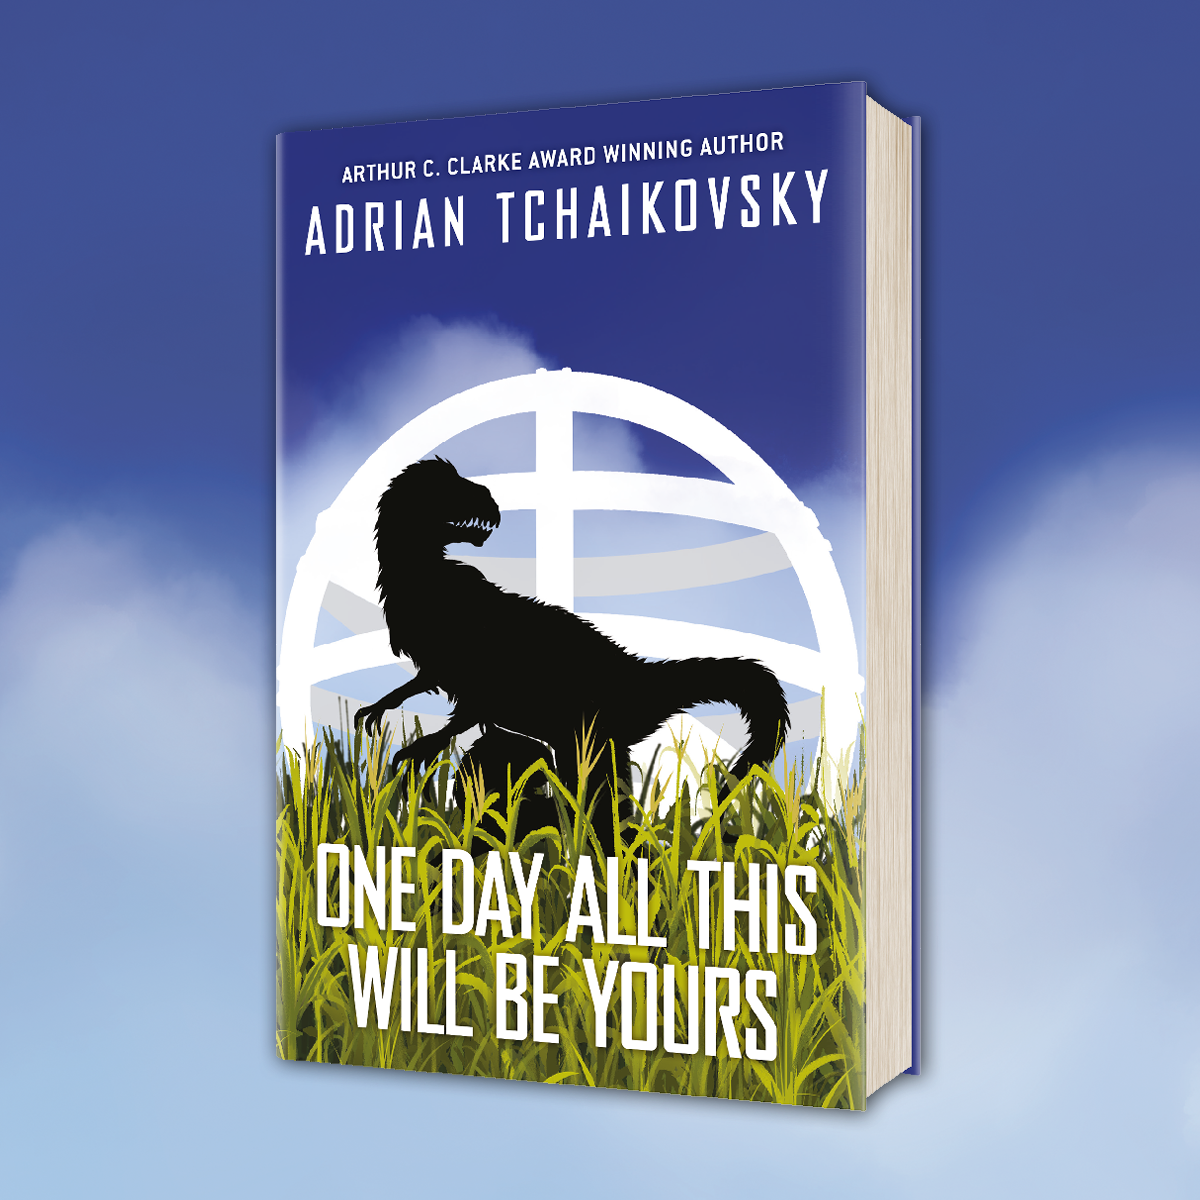 OUT NOW: One Day All This Will Be Yours by Adrian Tchaikovsky